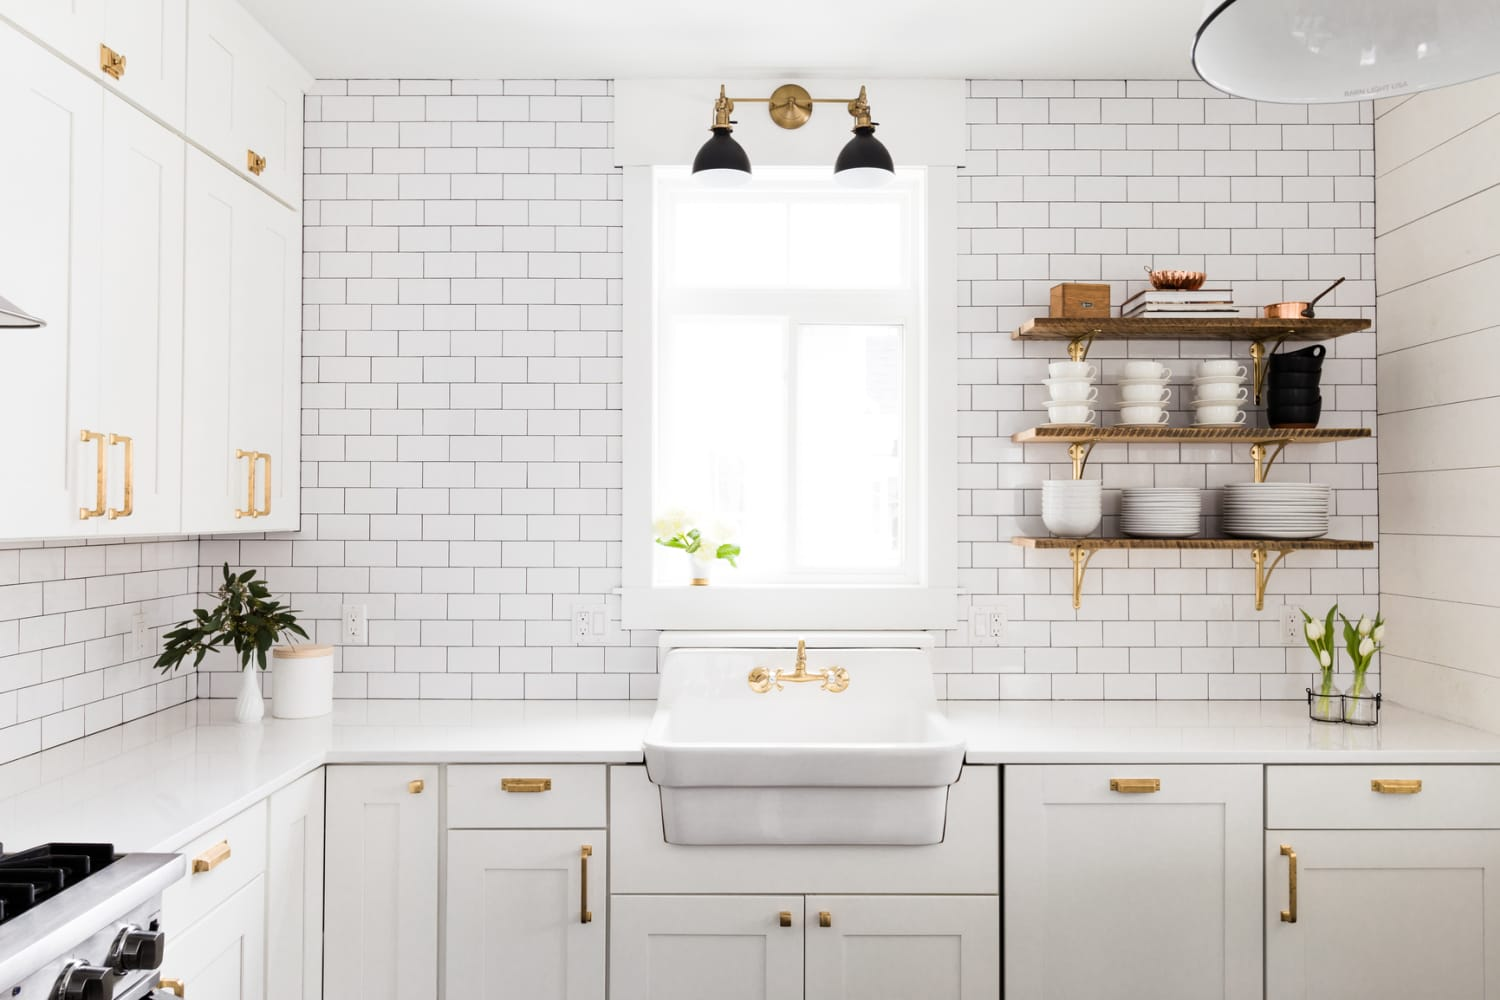 6 Homeowners Share Their Biggest Kitchen Renovation Regrets